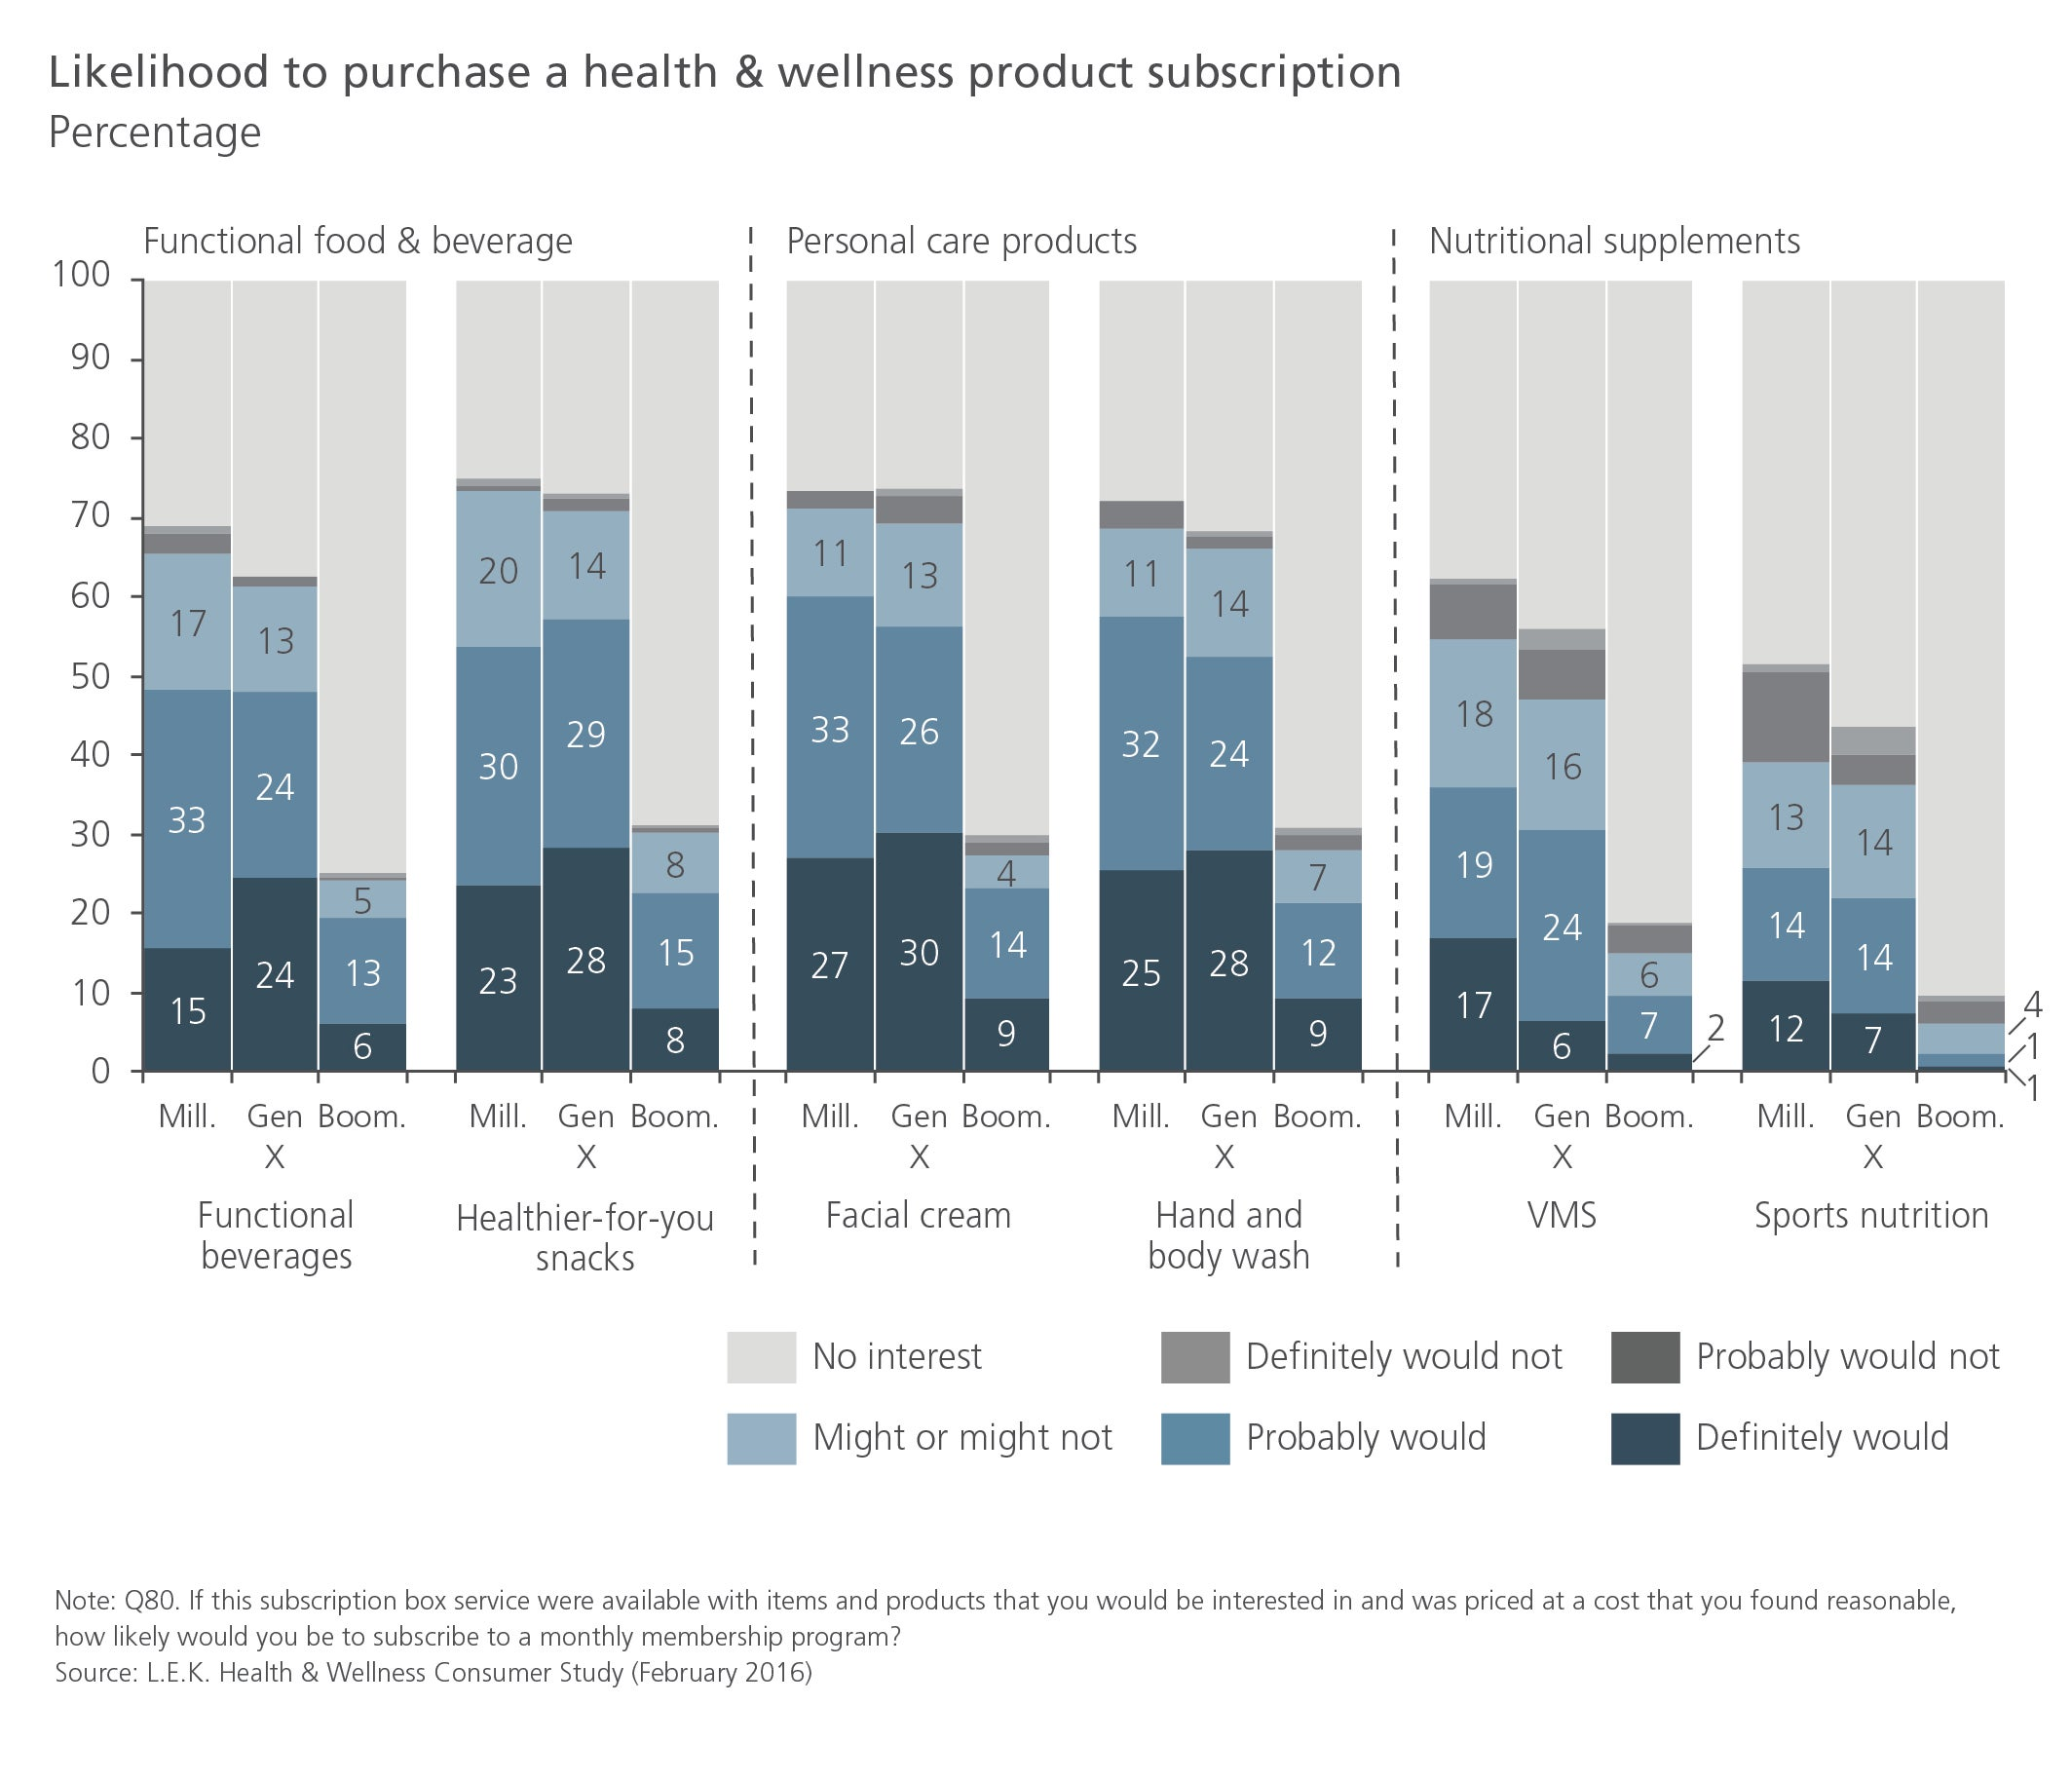 Likelihood to purchase a health & wellness product subscription